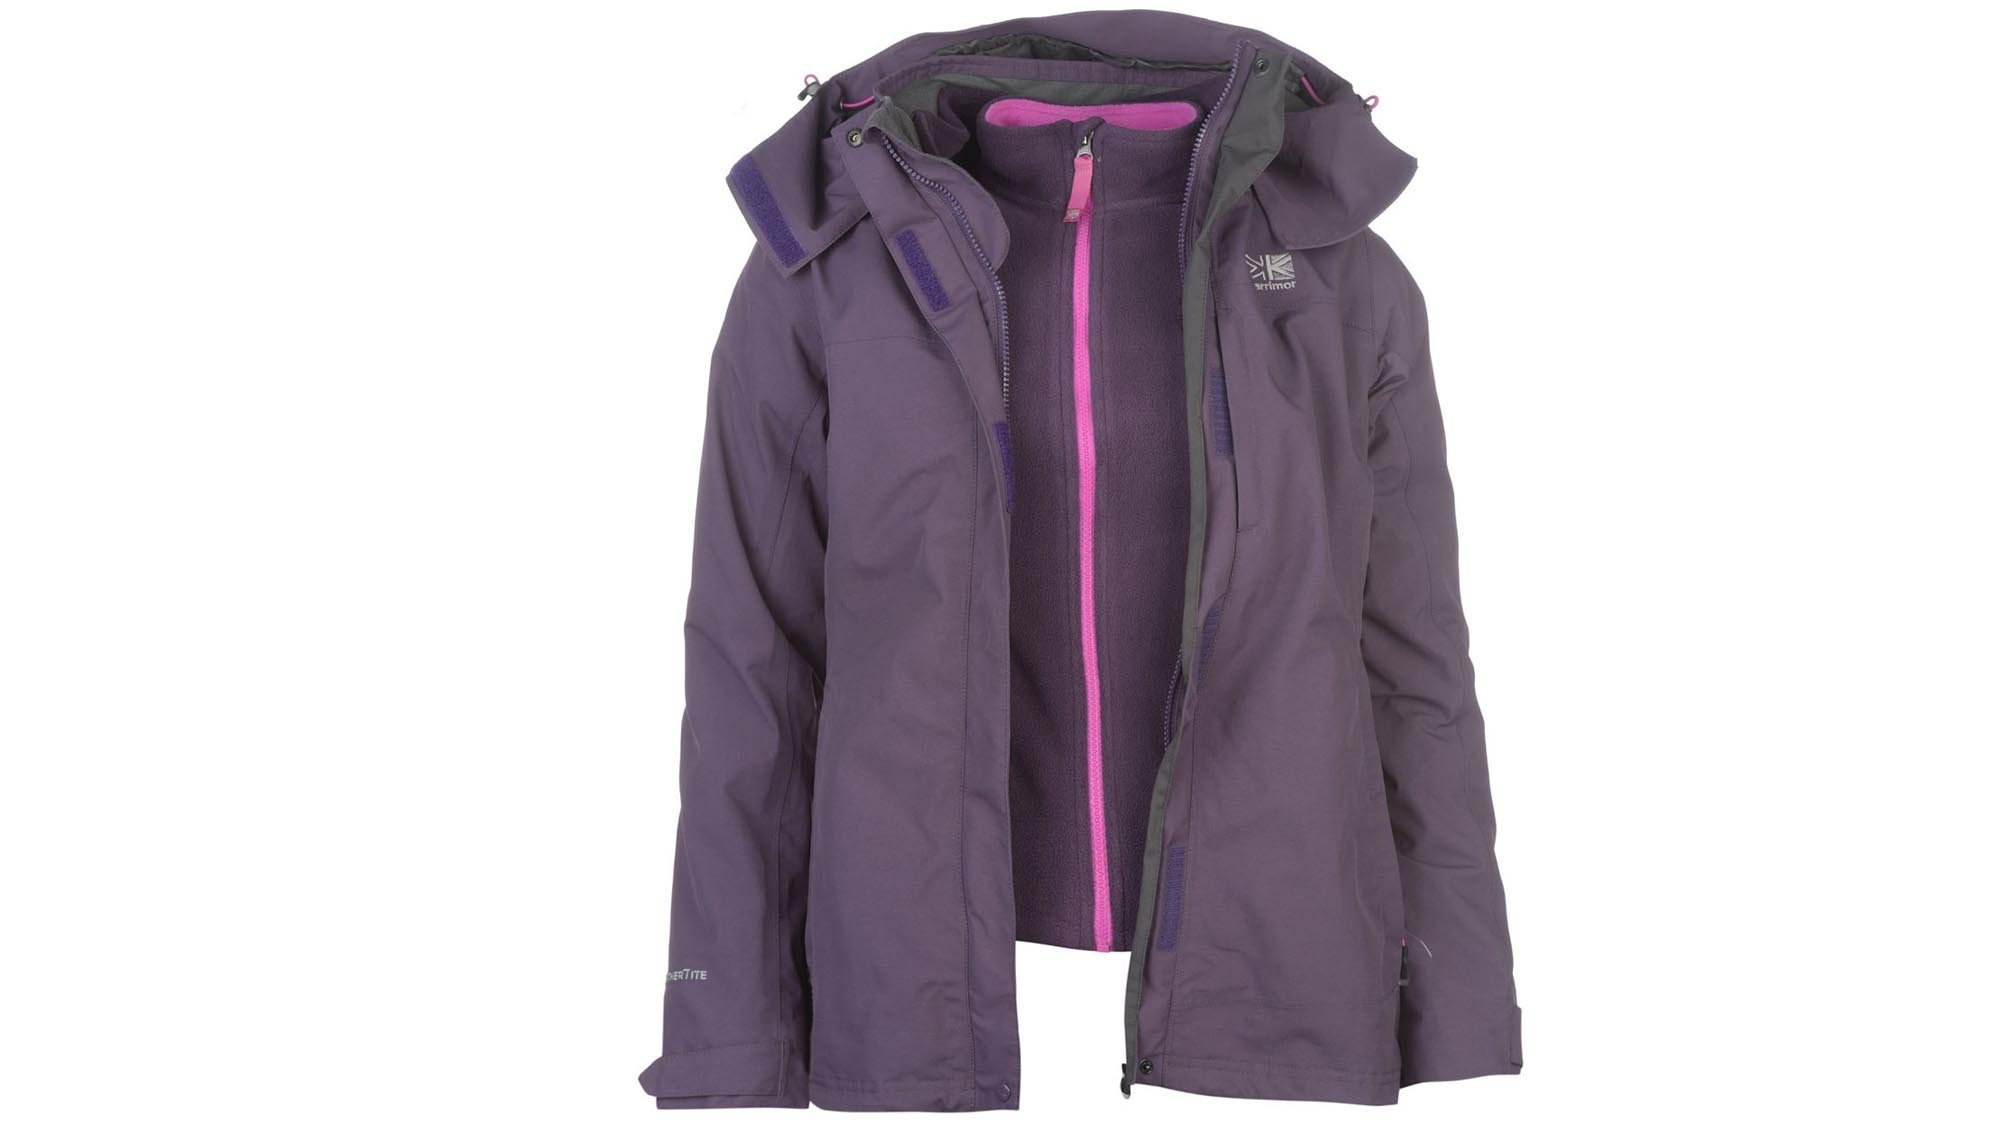 8e324f660555 Costing less than £50 makes this a huge bargain for a good waterproof jacket  already, but Karrimor's popular 3-in-1 model throws in a fleece as well, ...